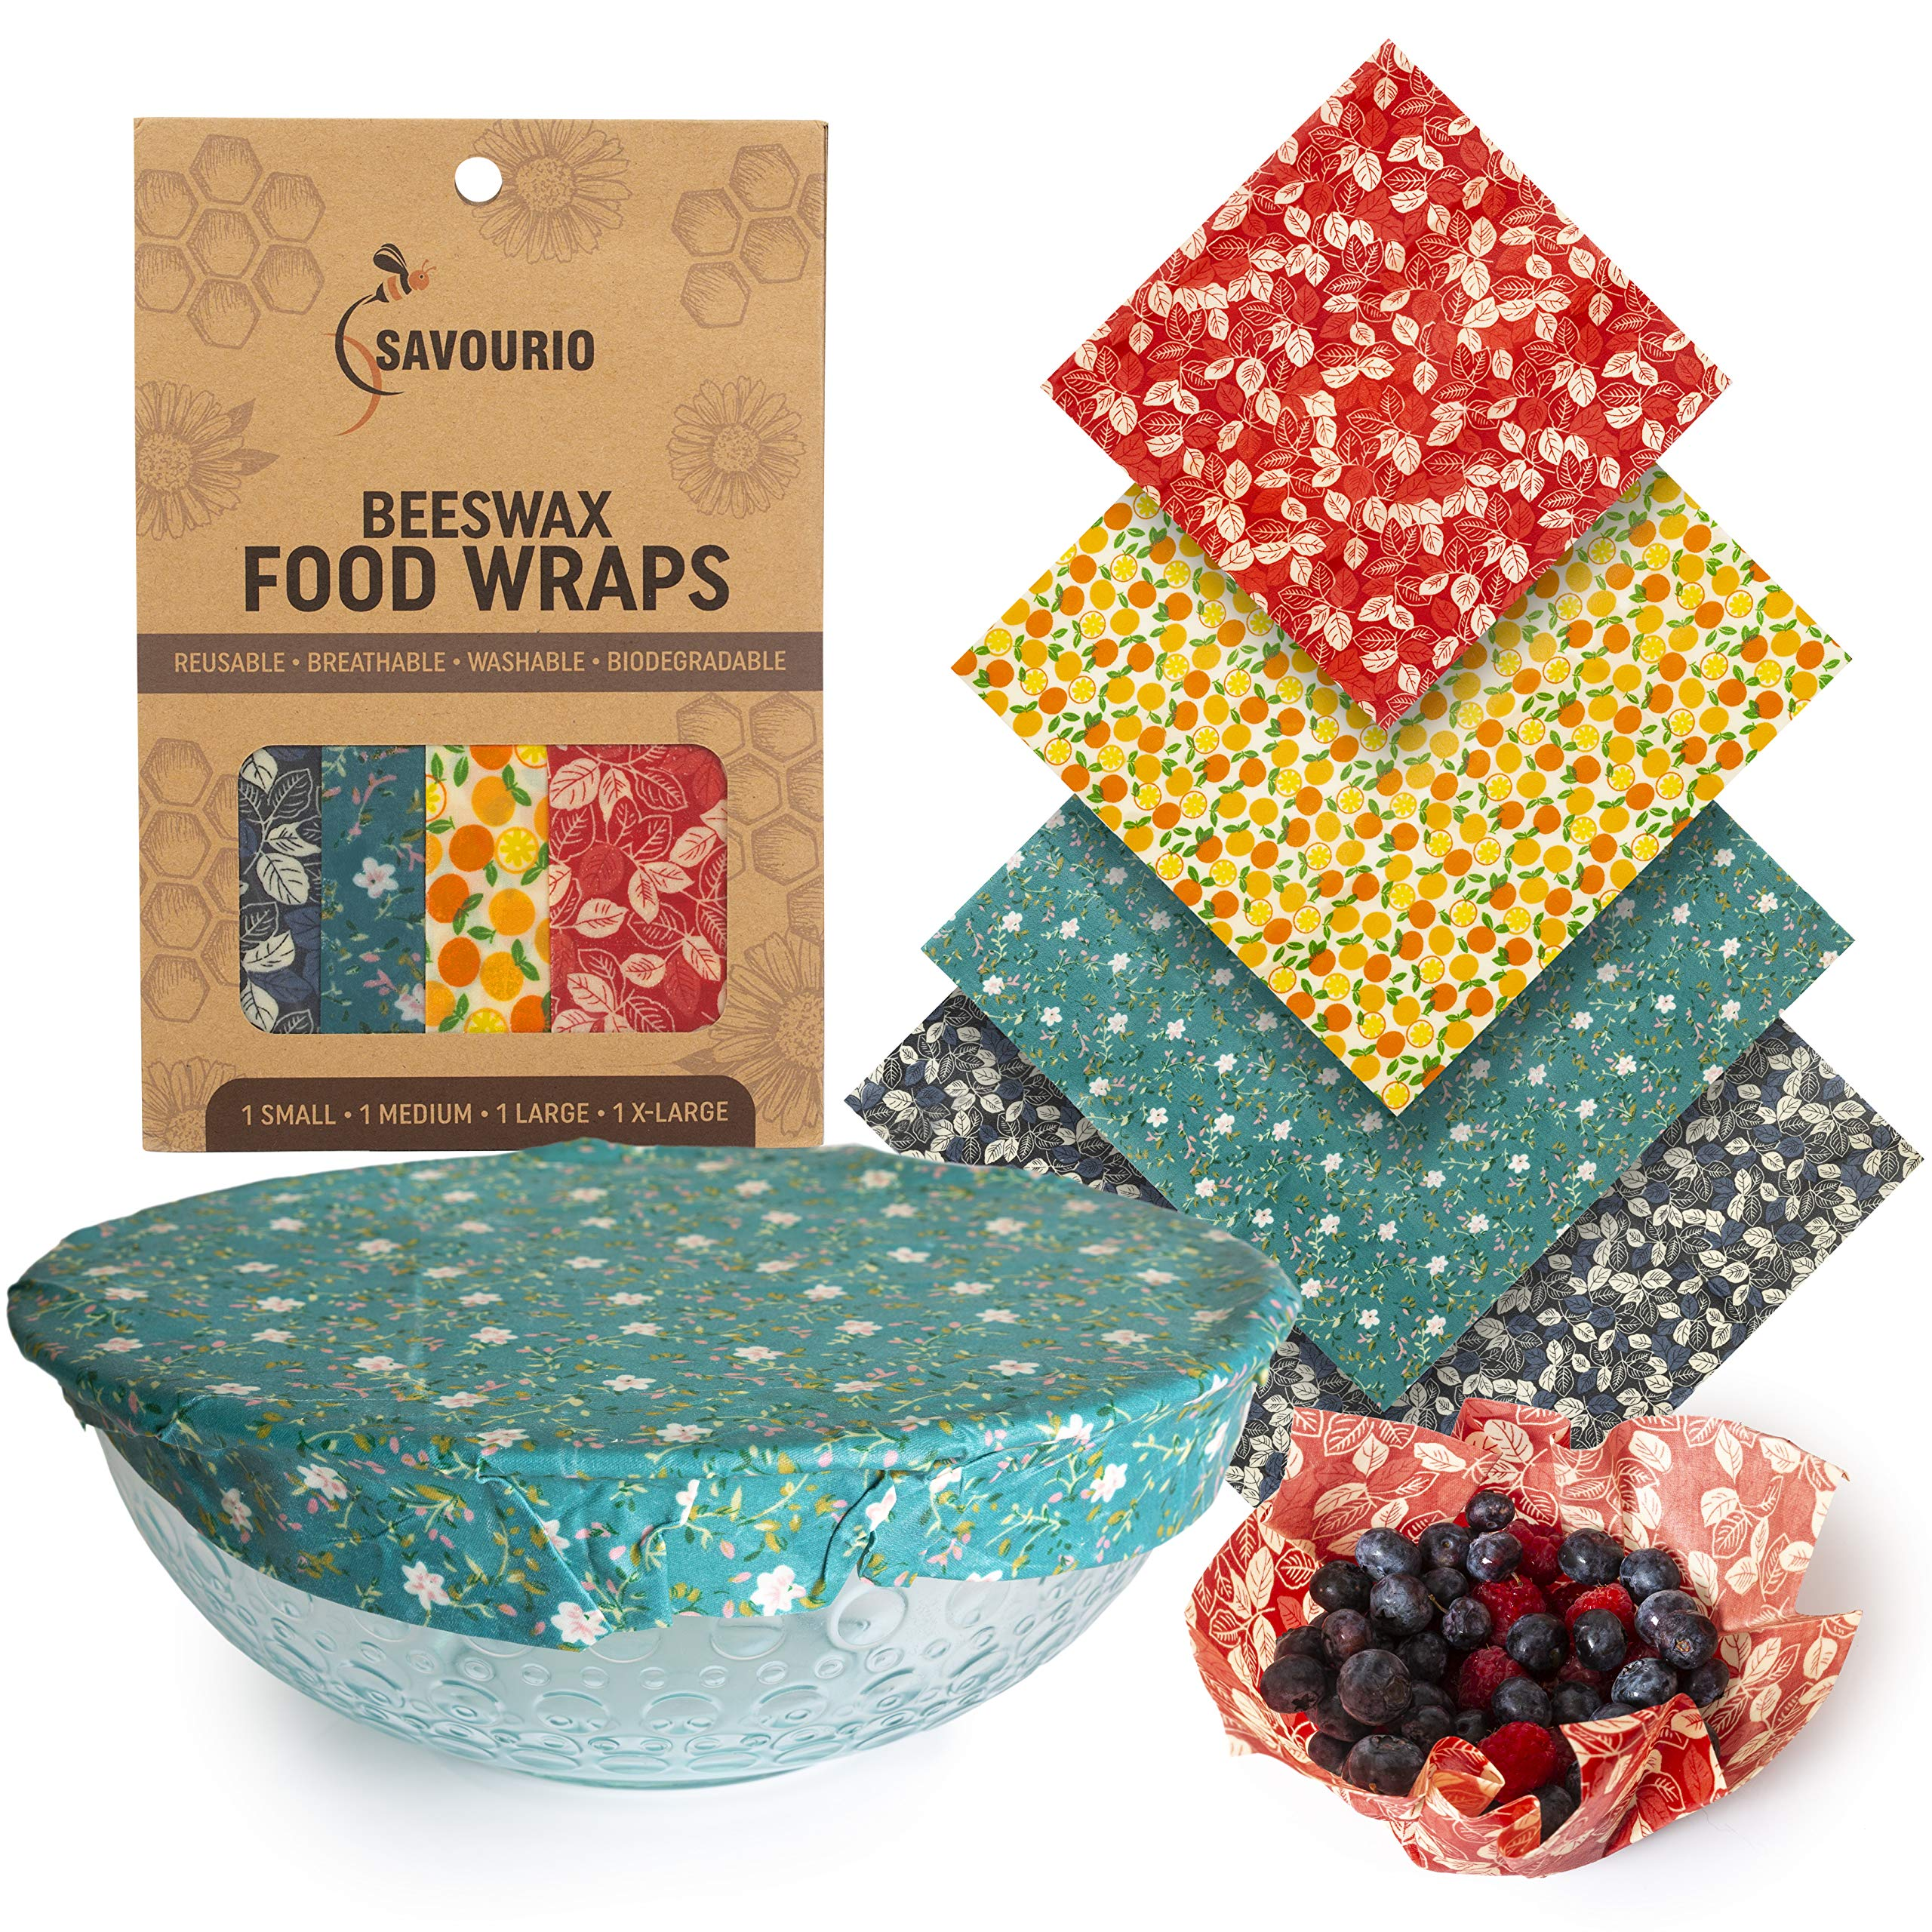 Reusable Beeswax Food Wrap, Zero Waste, Beeswax Wrap, Eco Friendly, Organic, Bees Wax Food Storage Wrappers Cling Sandwich, Alternative To Plastic Bags, Sustainable Products (Plant)